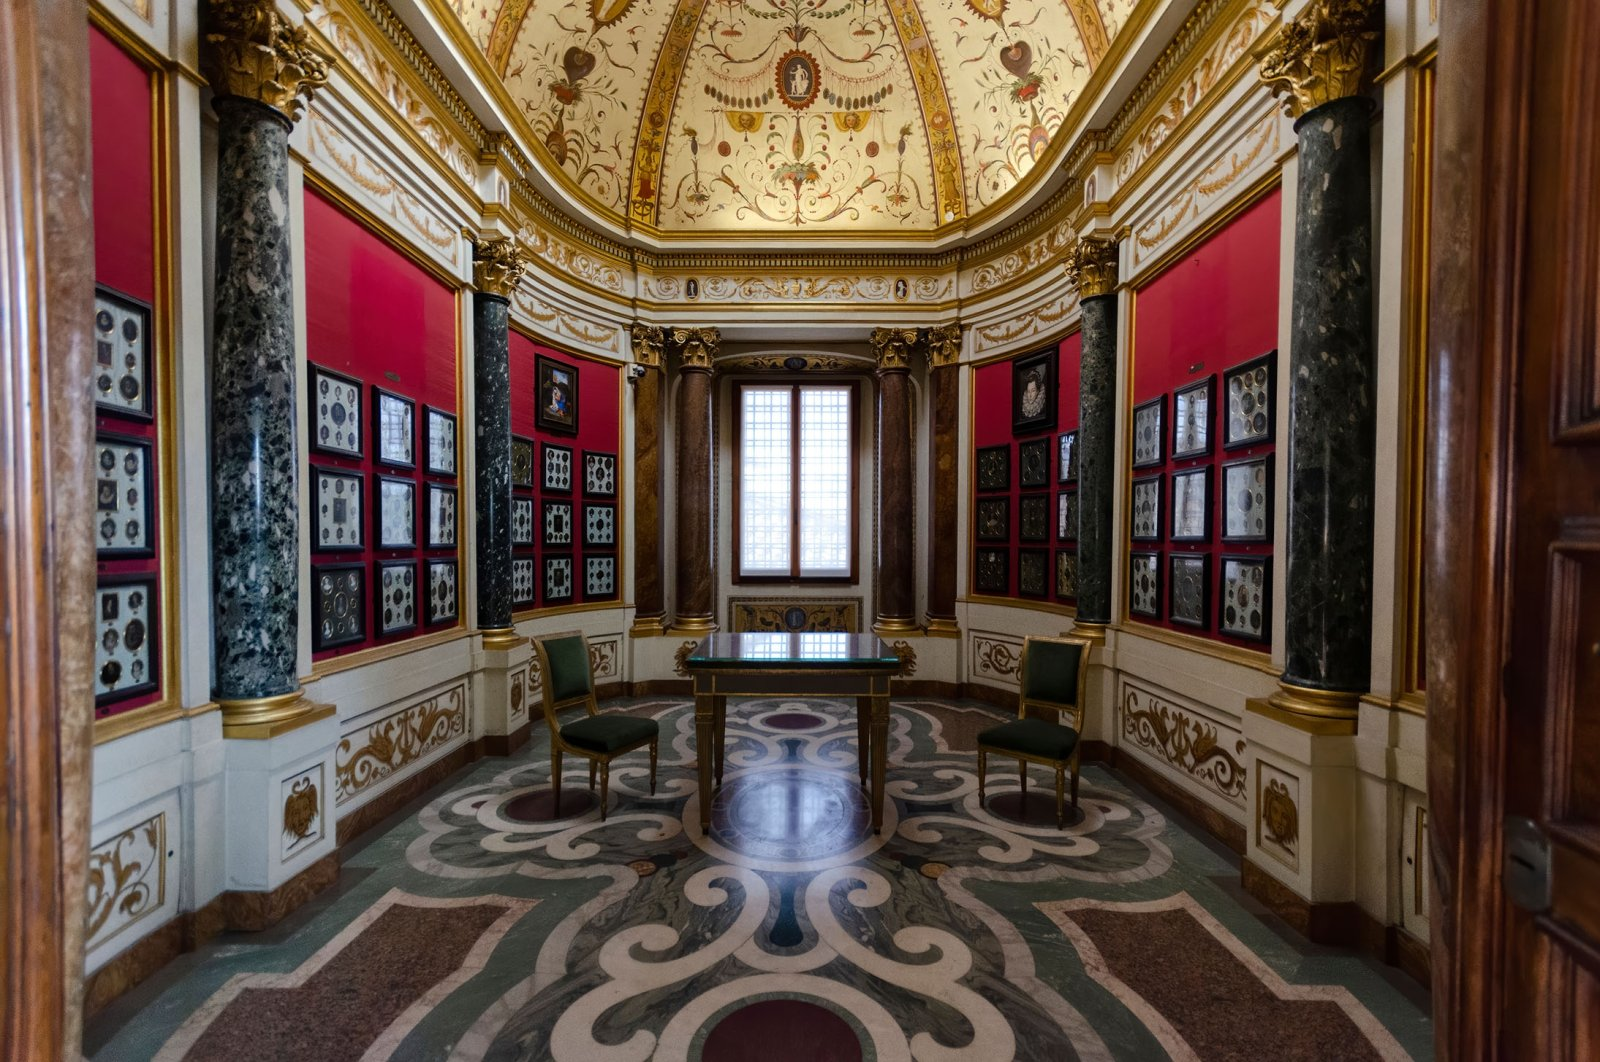 The interior of the Uffizi museum Gallery, the most famous museum in Florence, Italy, Feb. 14, 2020. (Shutterstock Photo)